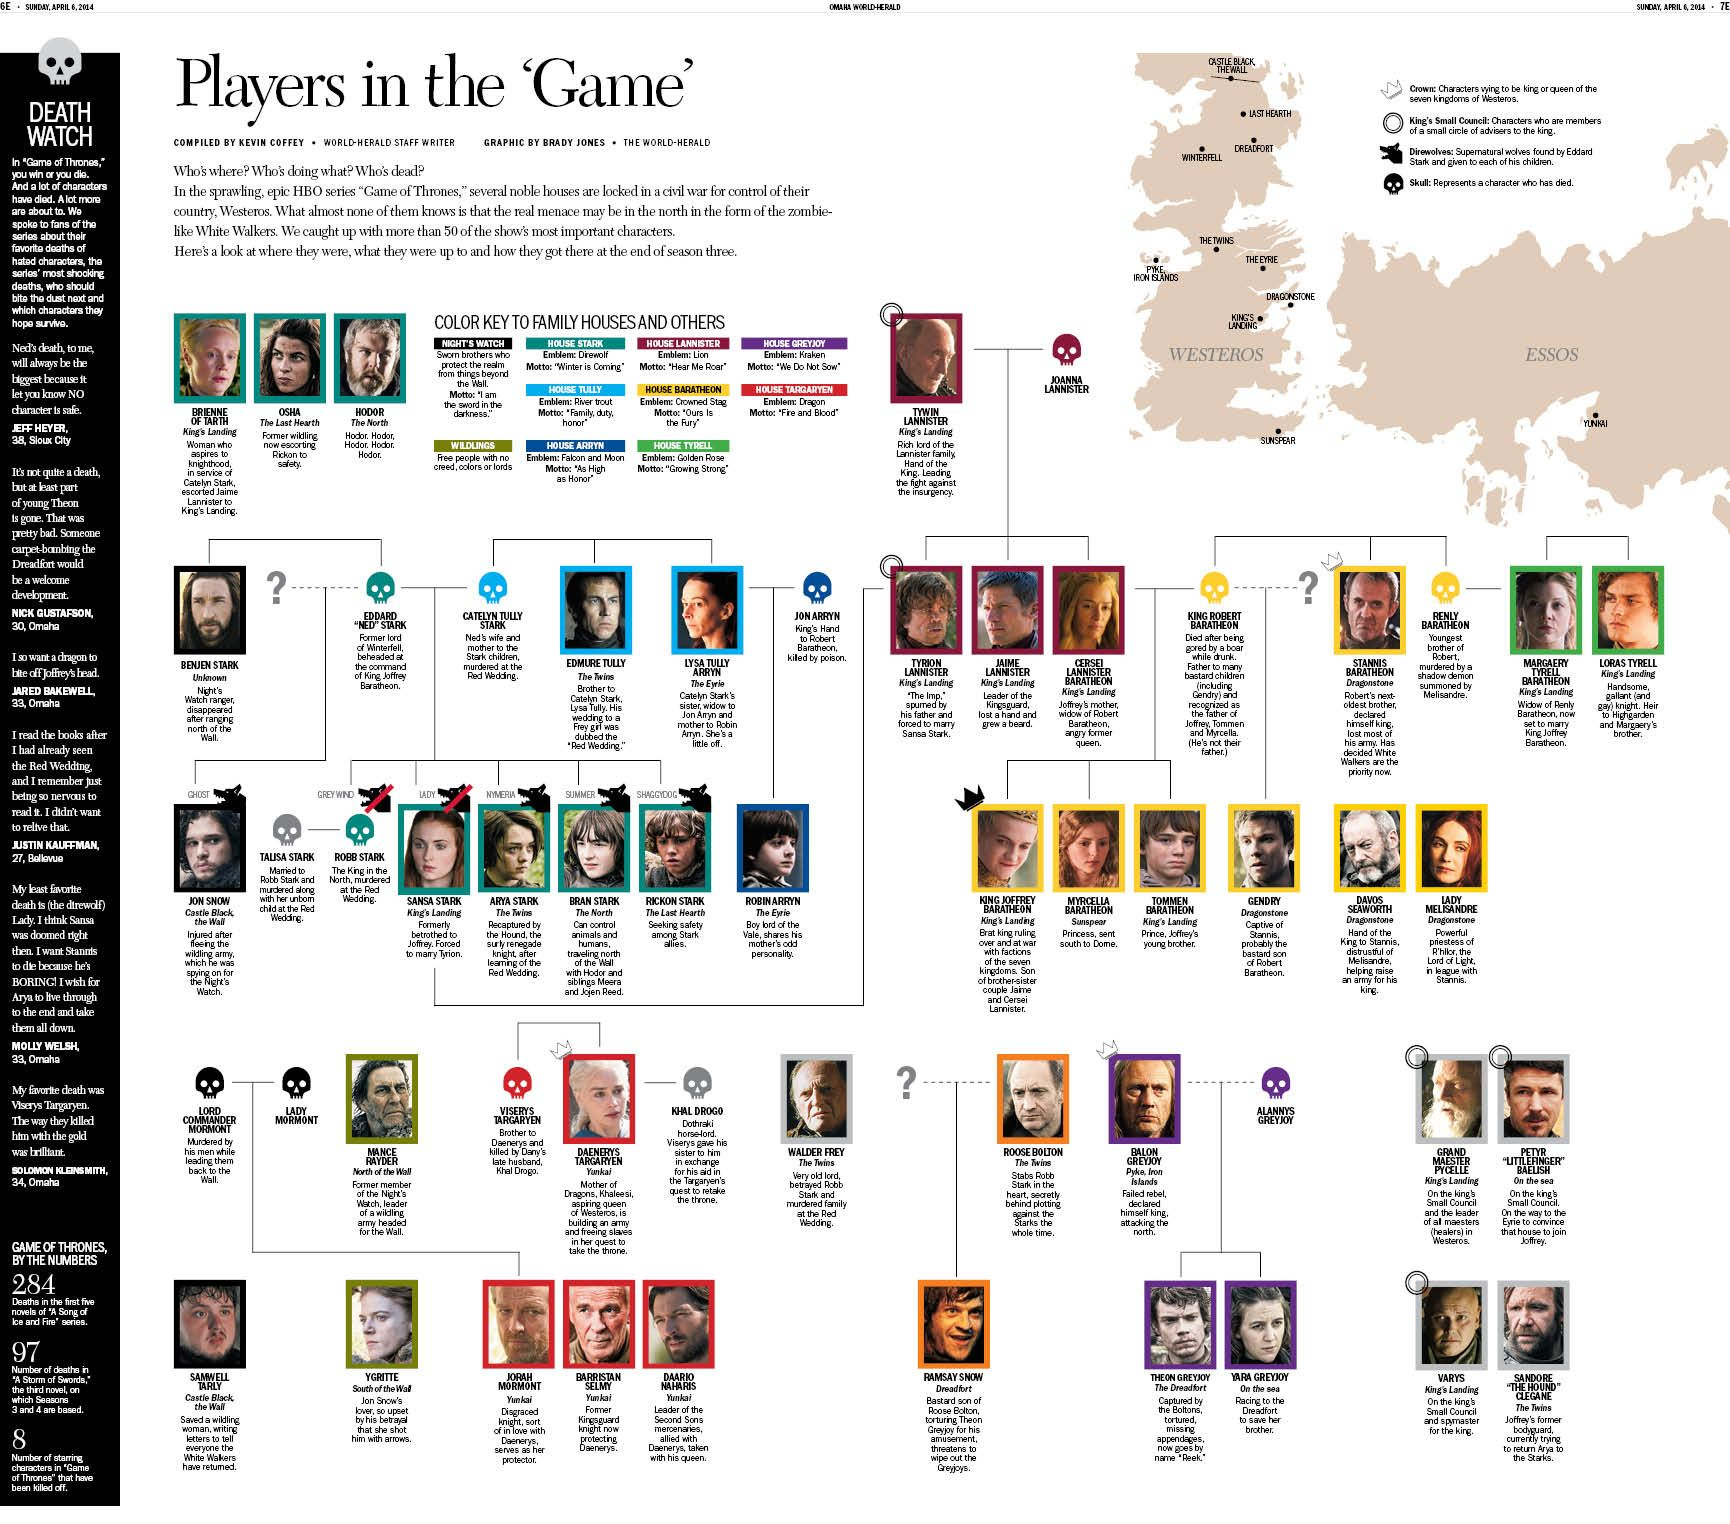 Pin By Ryon Nance On Game Of Thrones Infographic In 2019